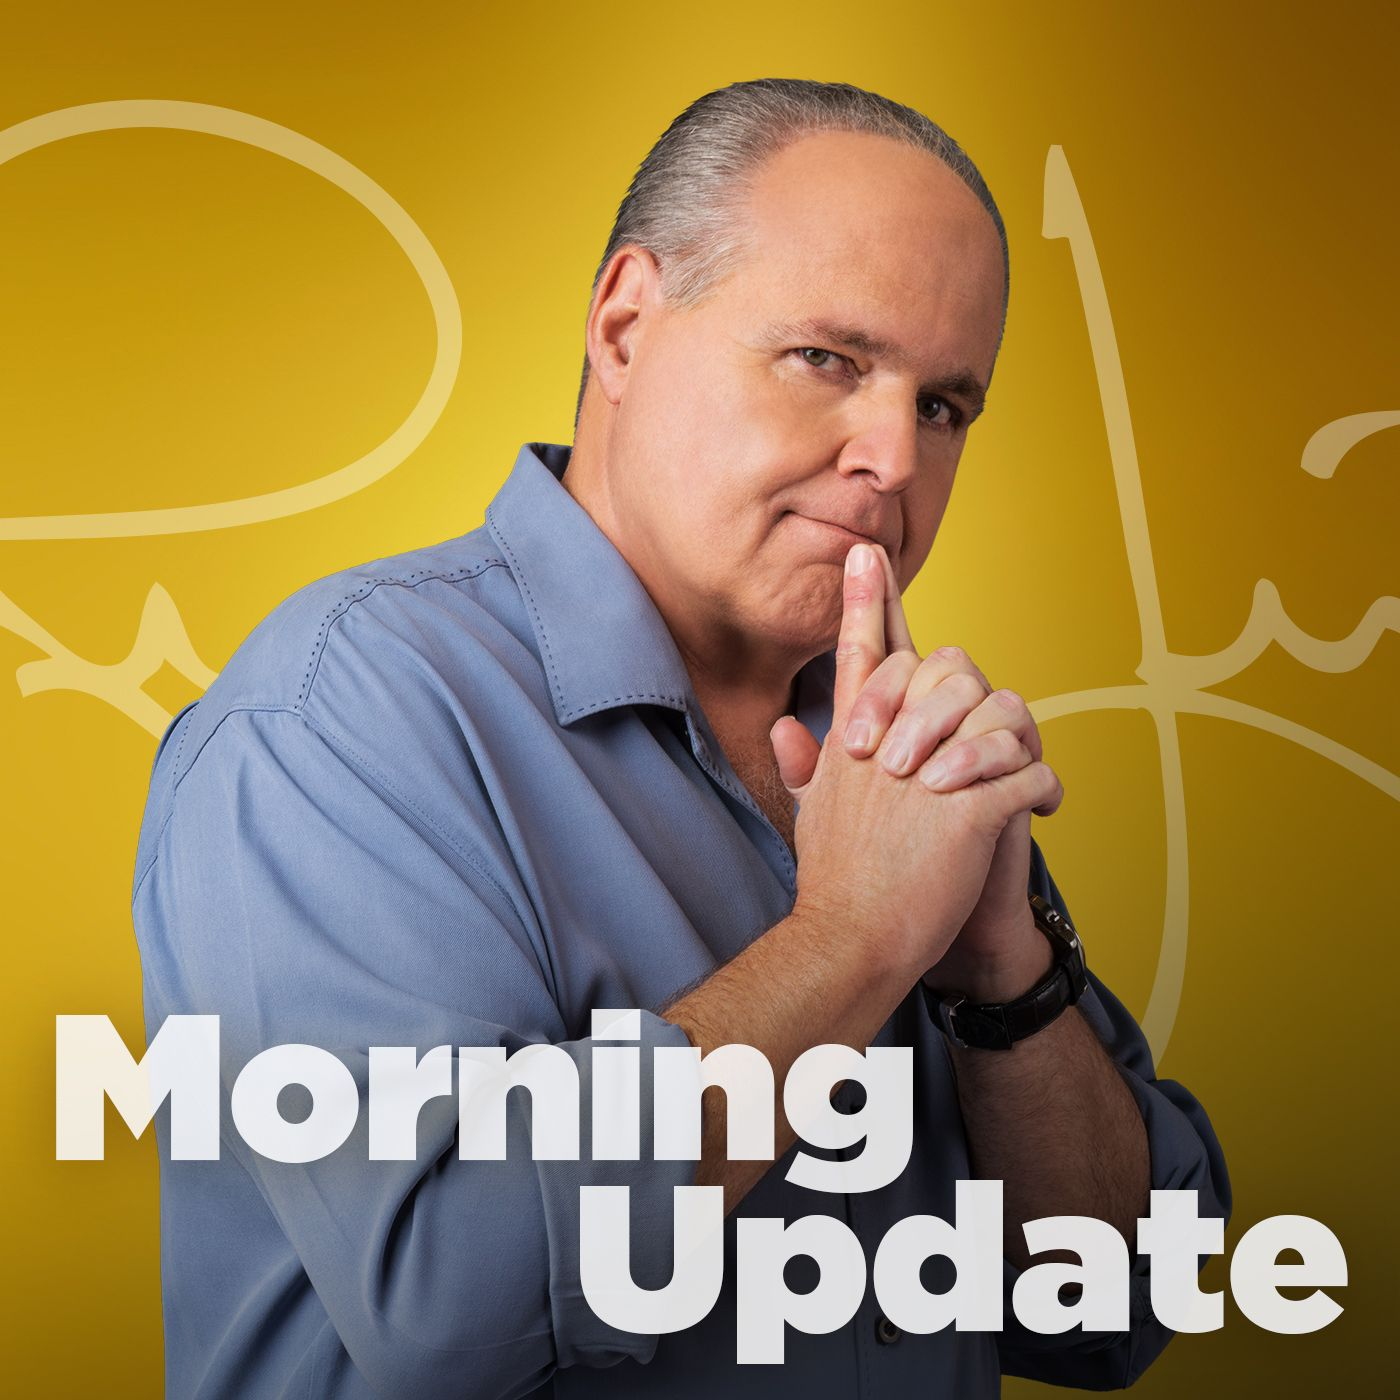 Rush Limbaugh Jun 11, 2020